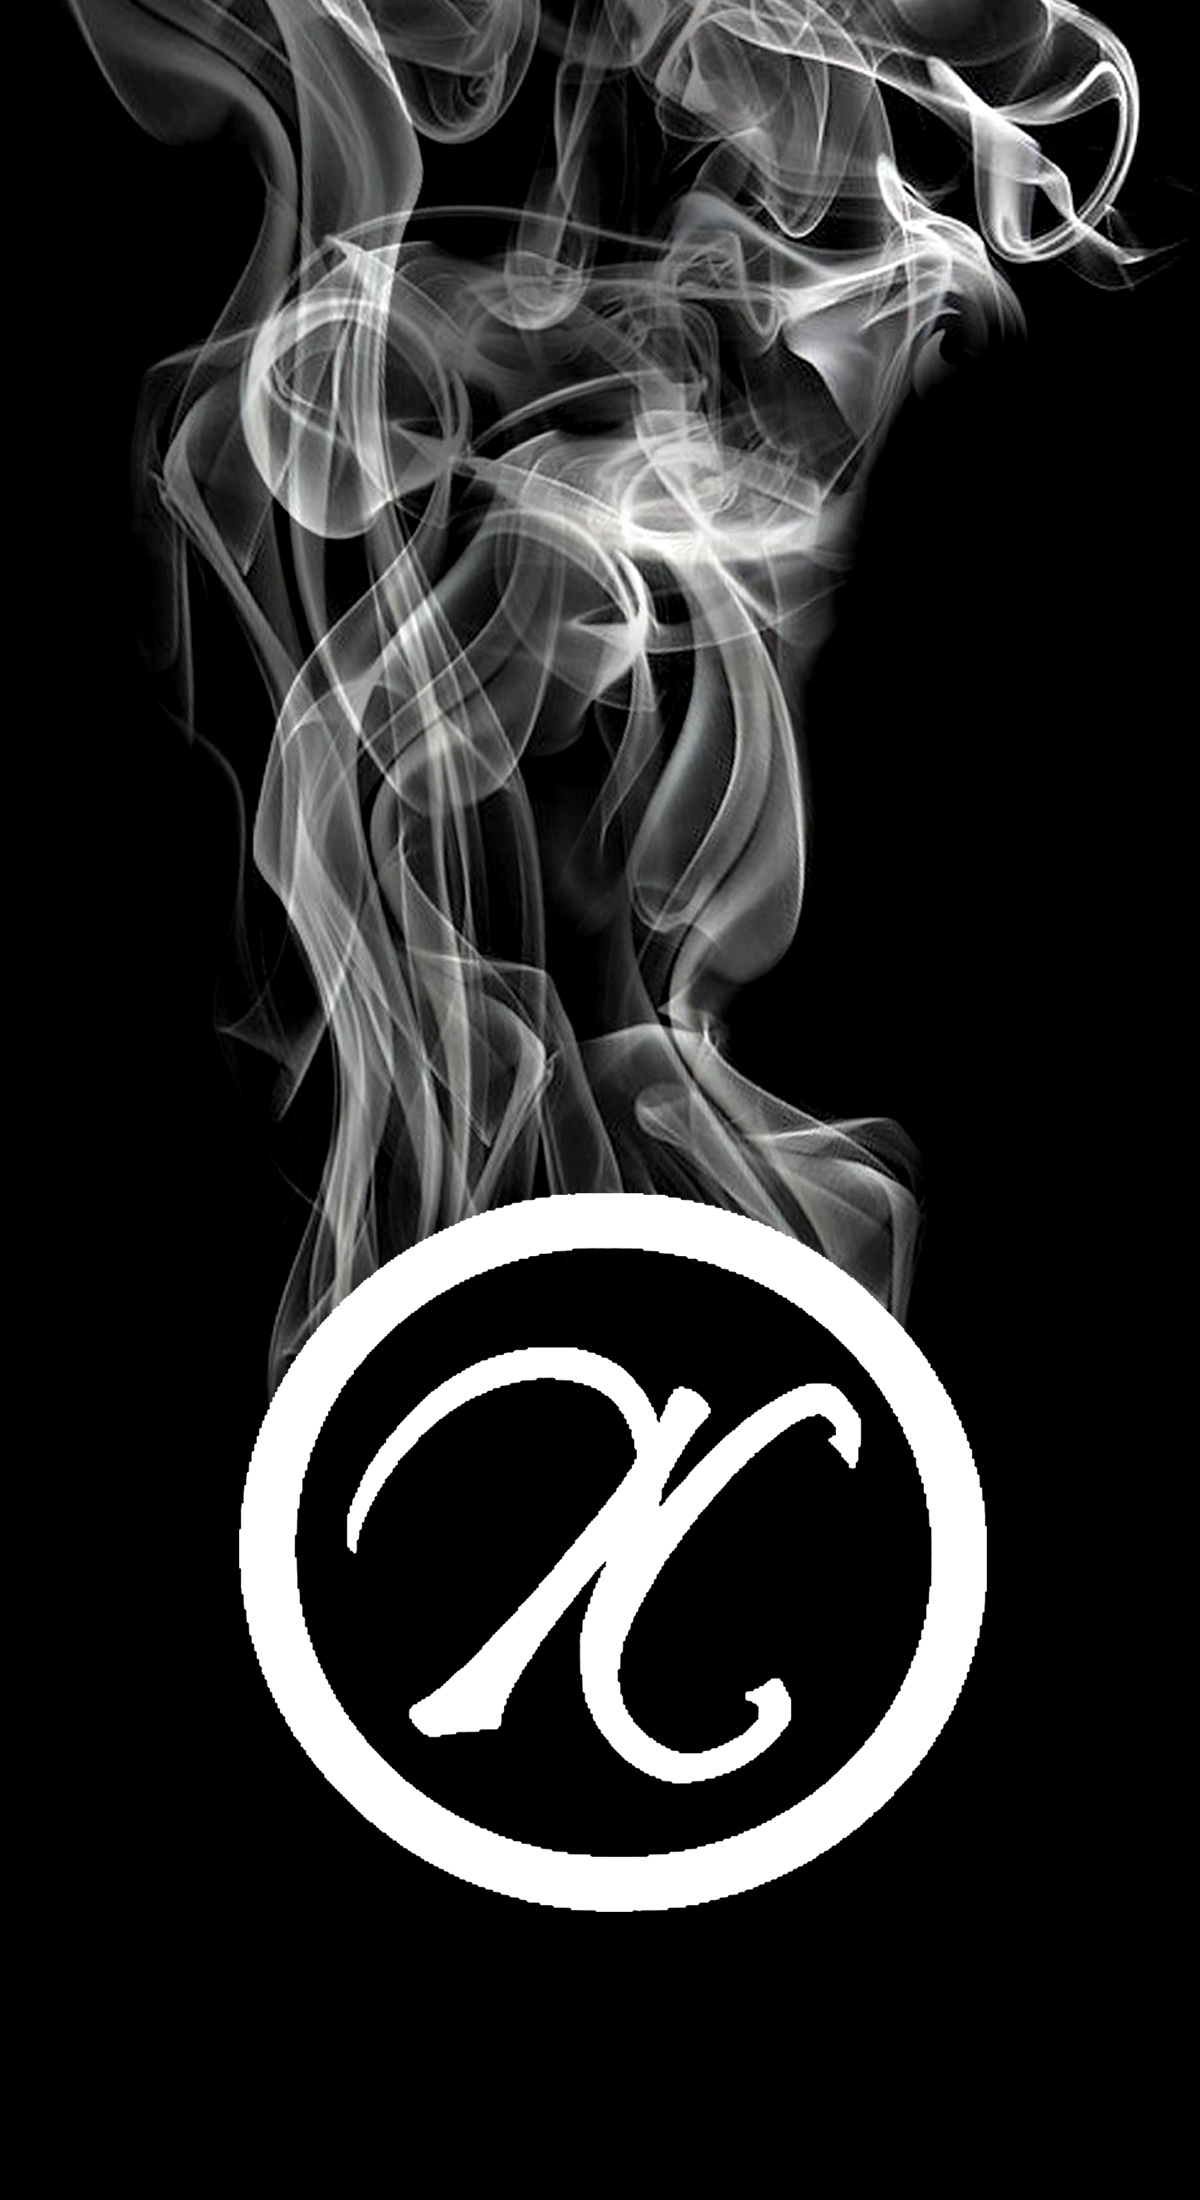 Nika Cherrelle's logo, a sylized N in a circle, with smoke pouring off the top